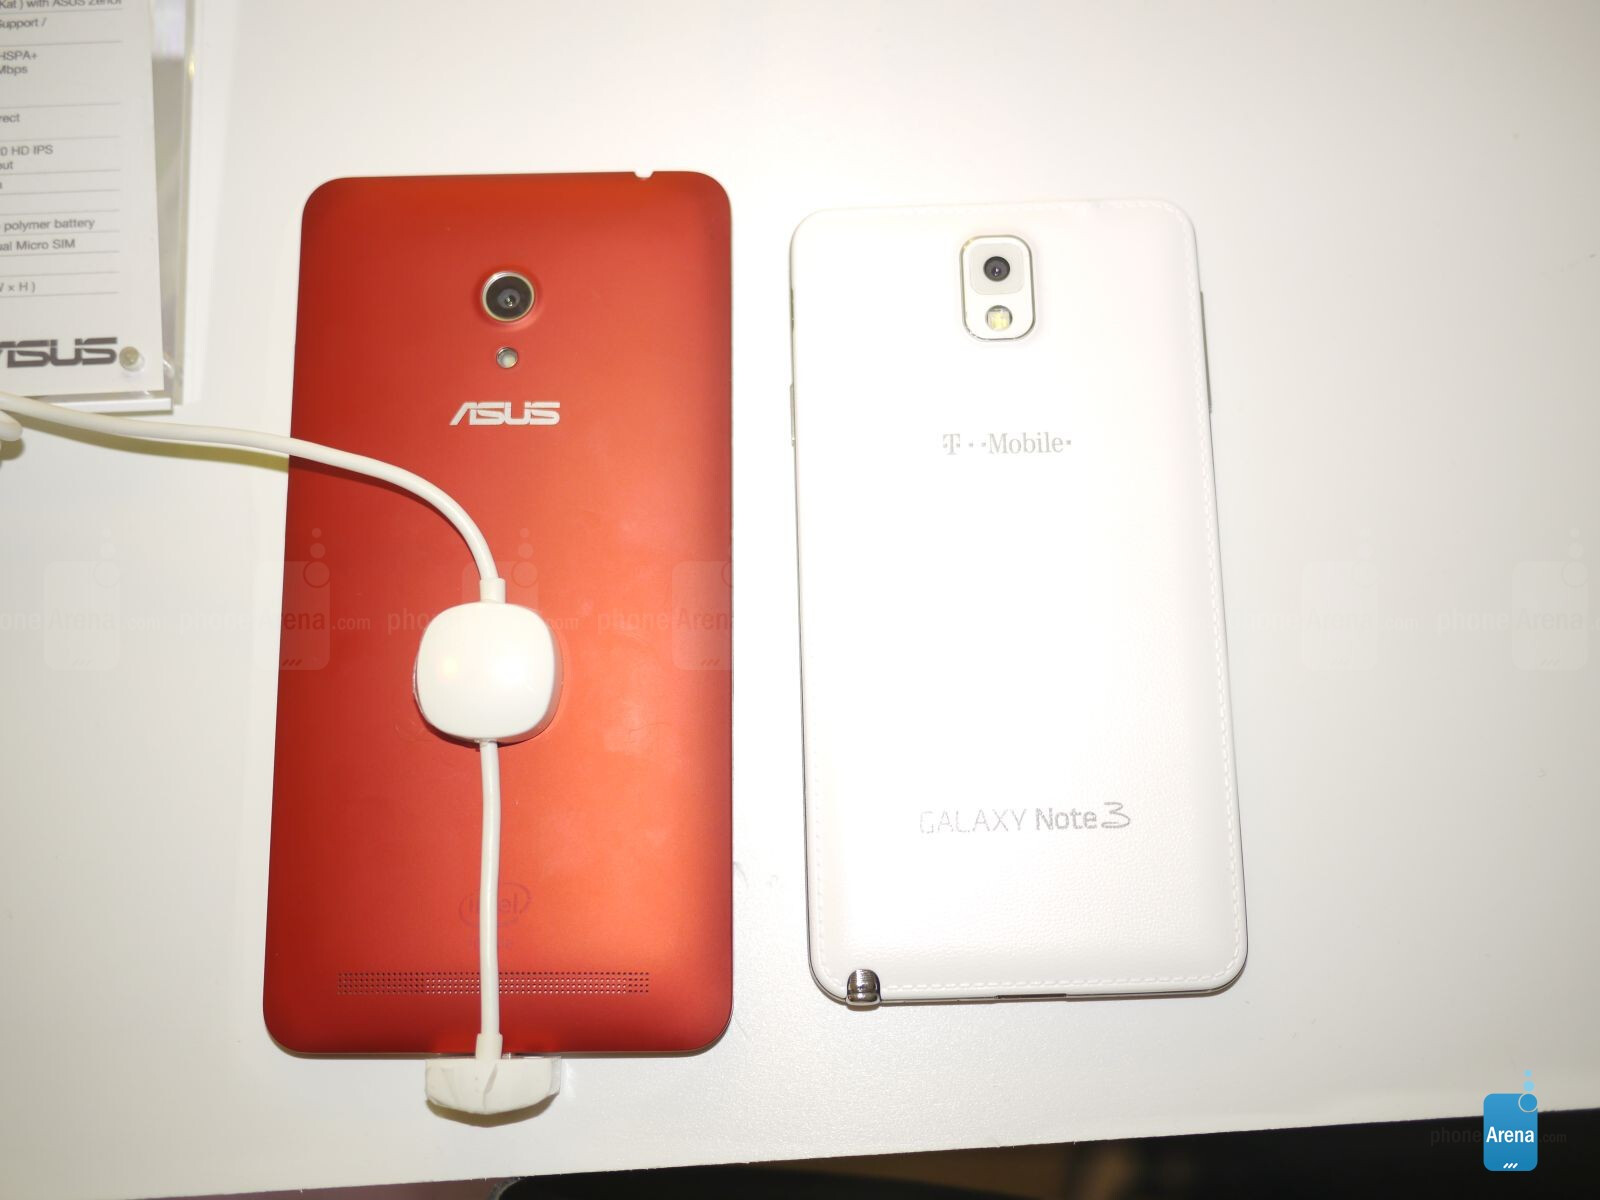 Asus ZenFone 6 Vs Samsung Galaxy Note 3 First Look